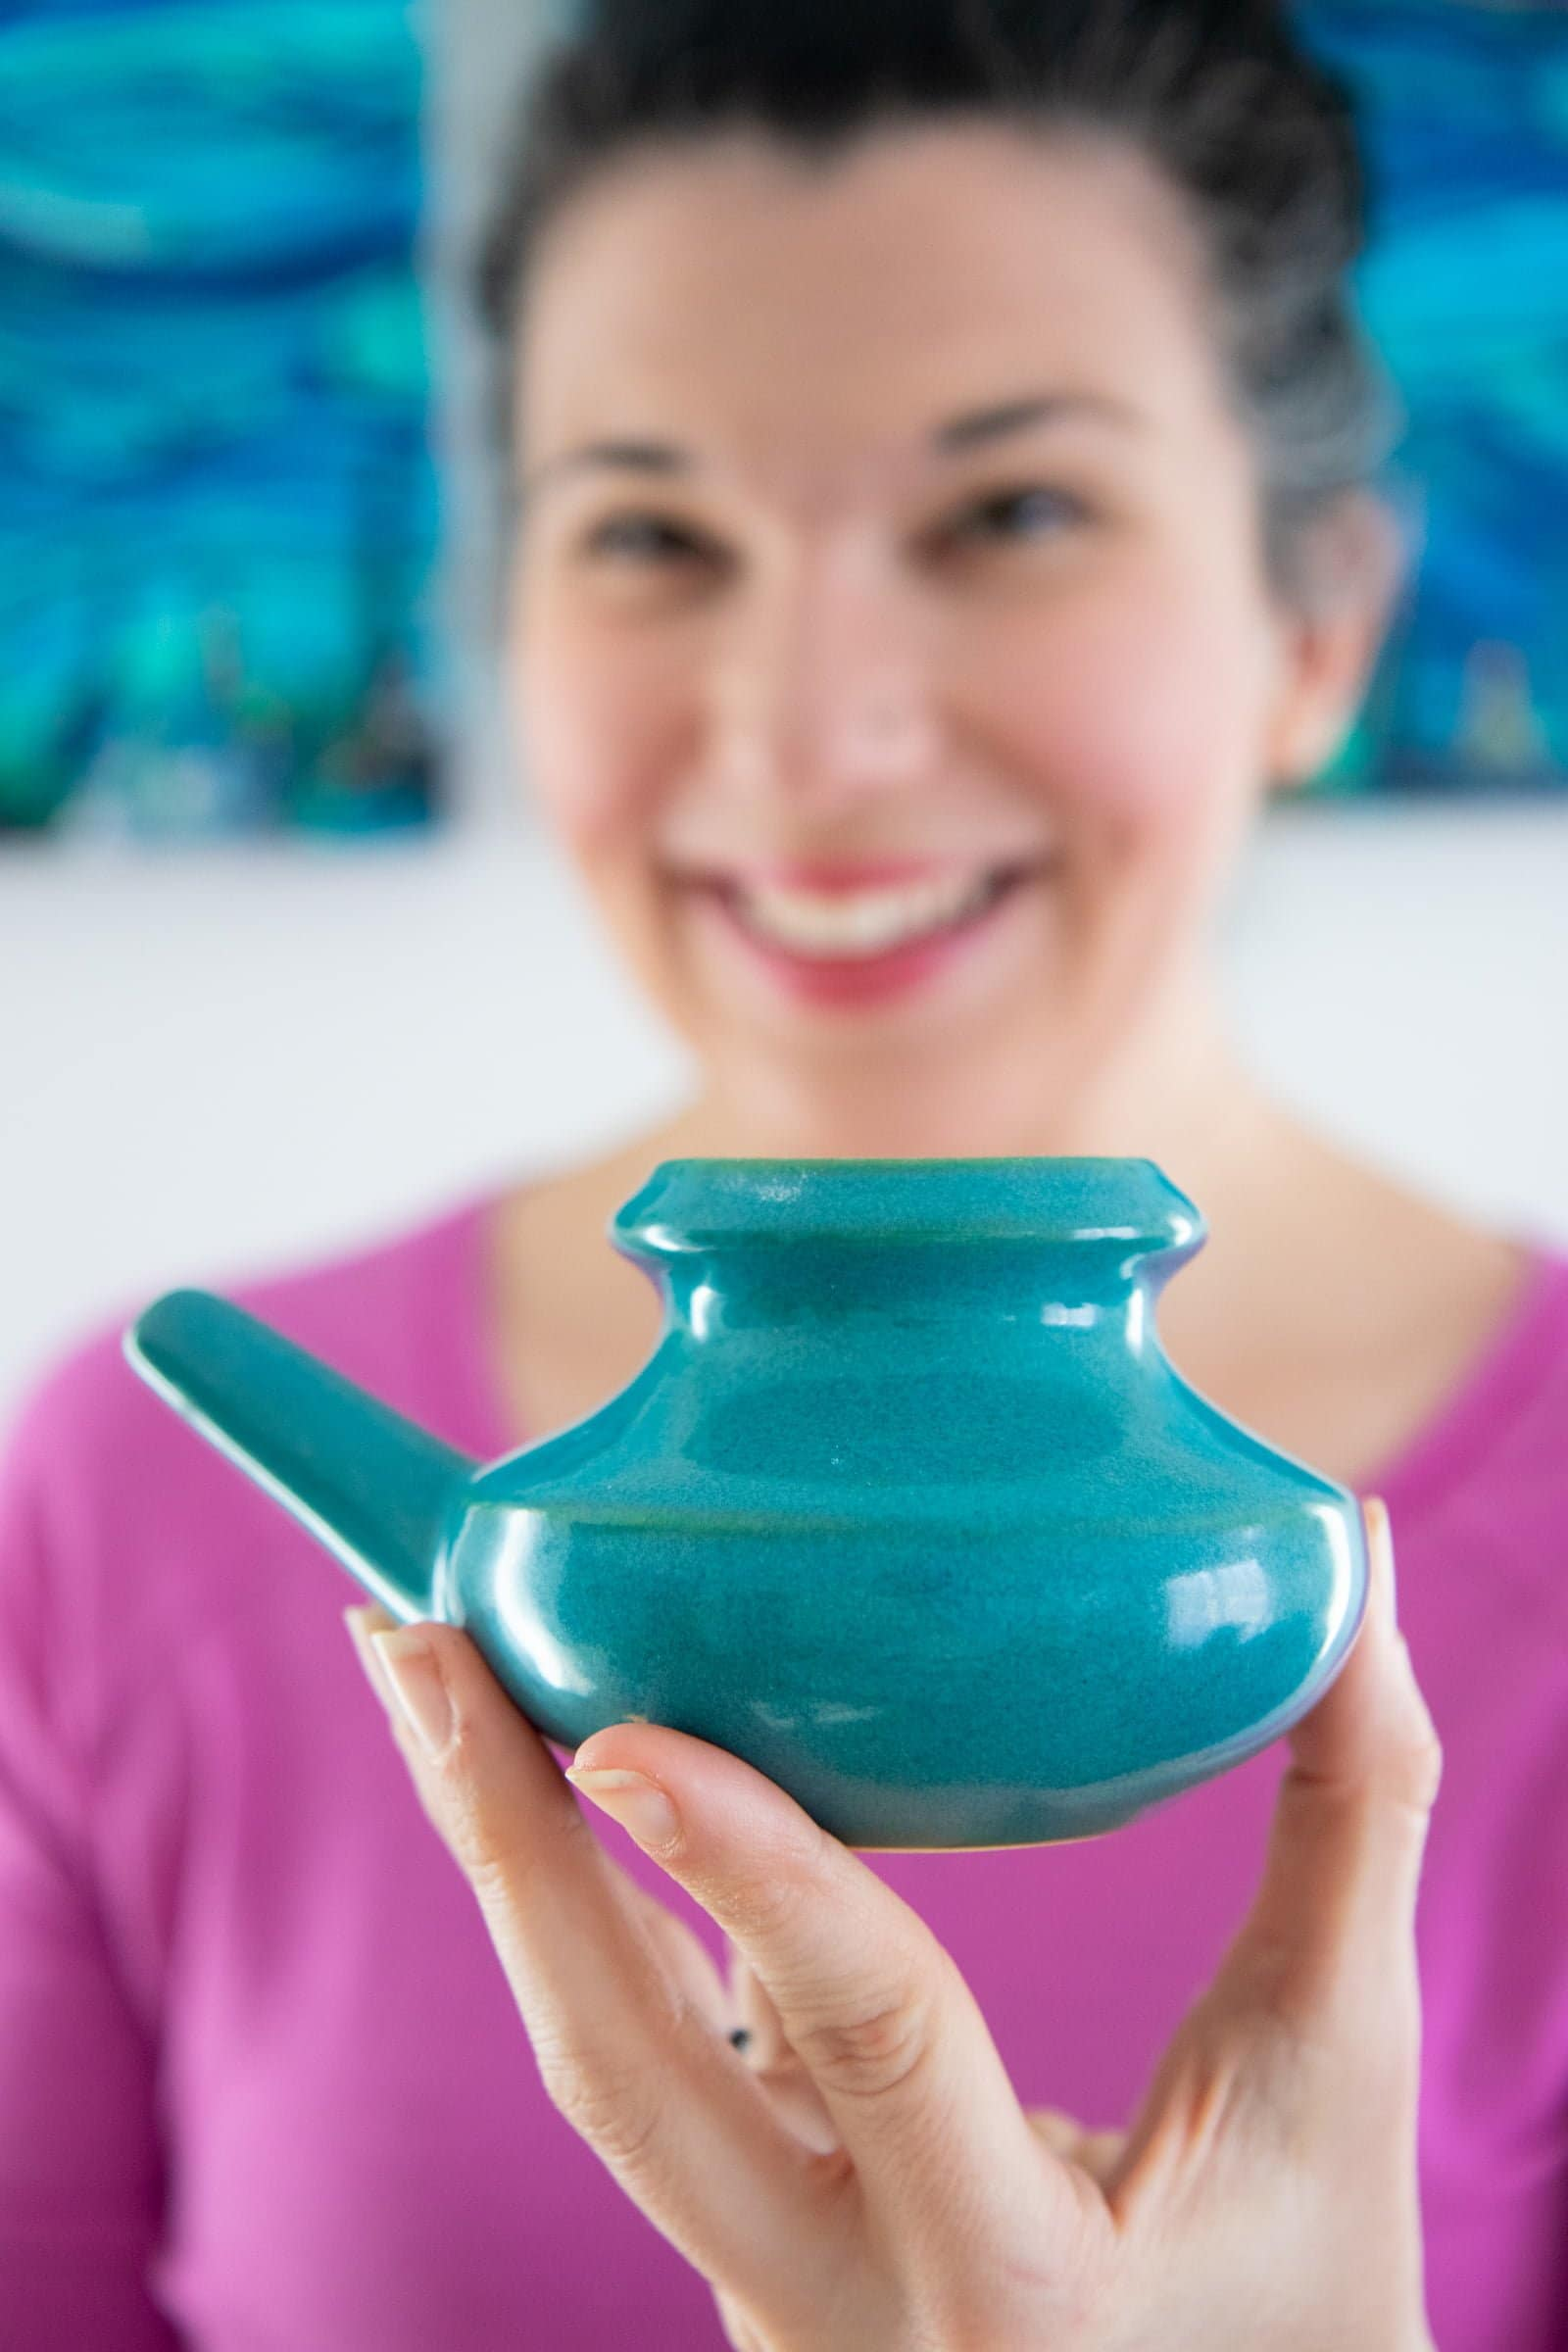 Woman in a pink shirt holding a ceramic neti pot in front of her and smiling